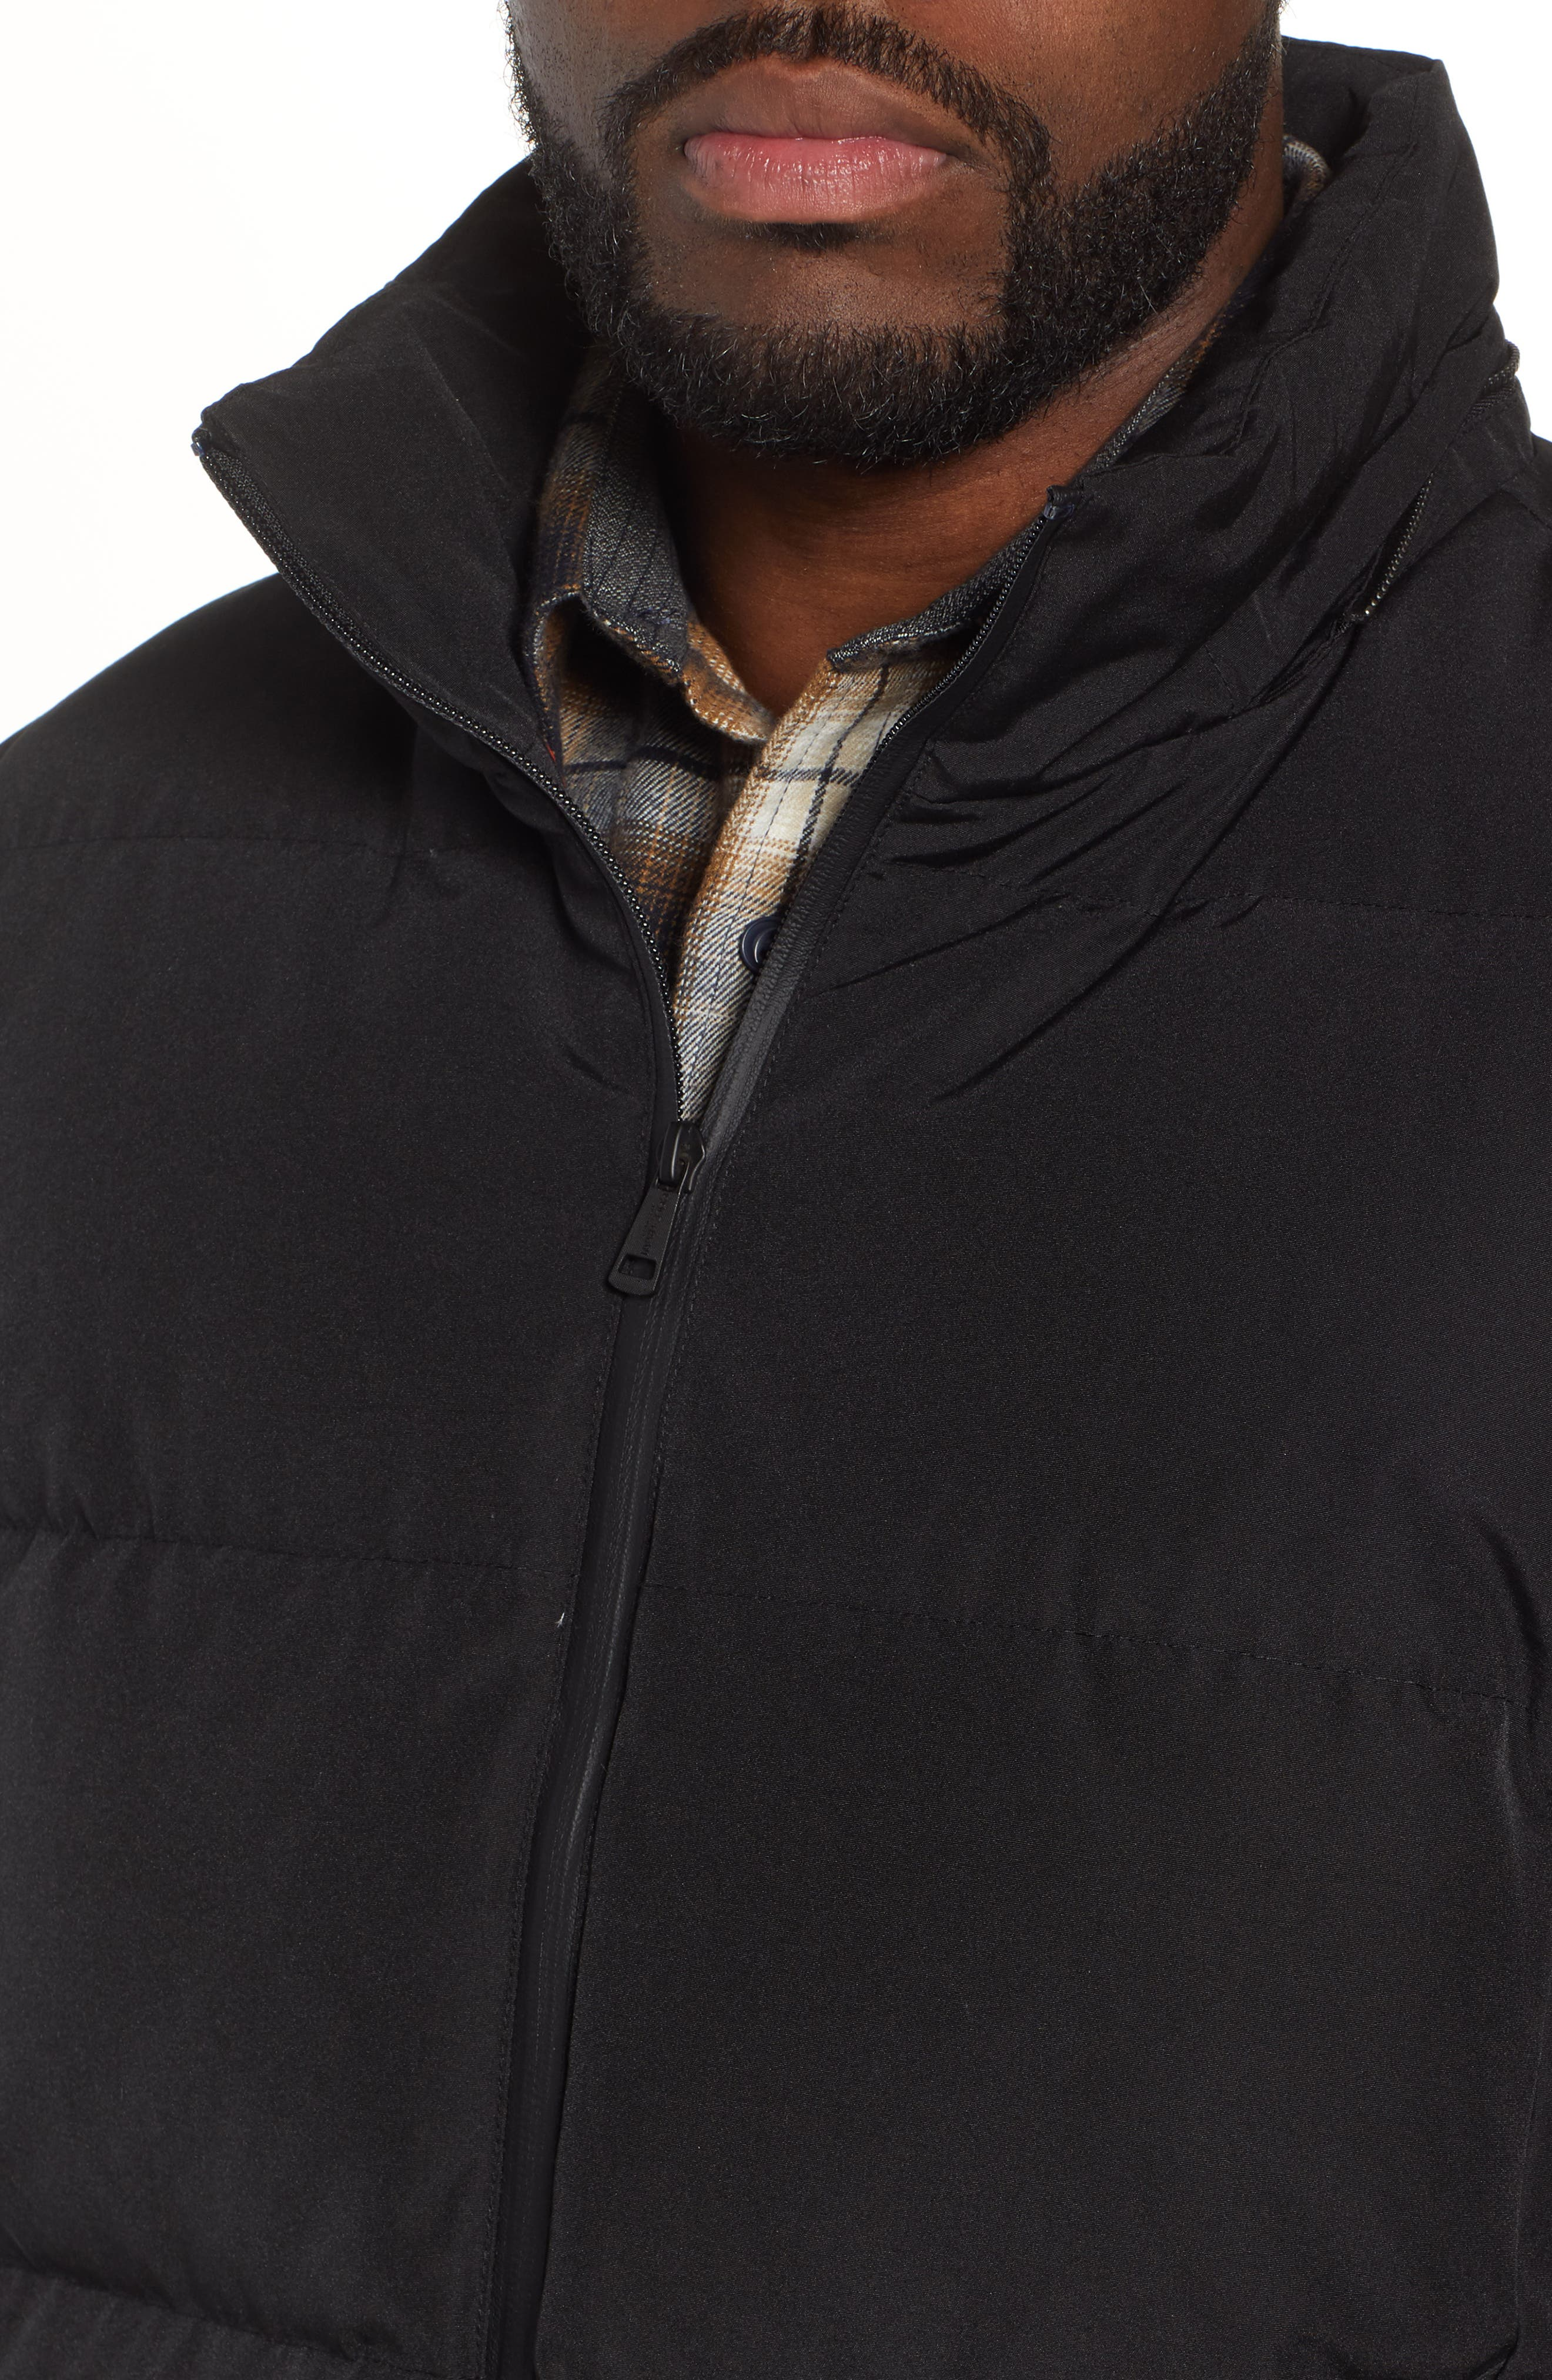 COLE HAAN SIGNATURE, Hooded Puffer Jacket, Alternate thumbnail 5, color, 001